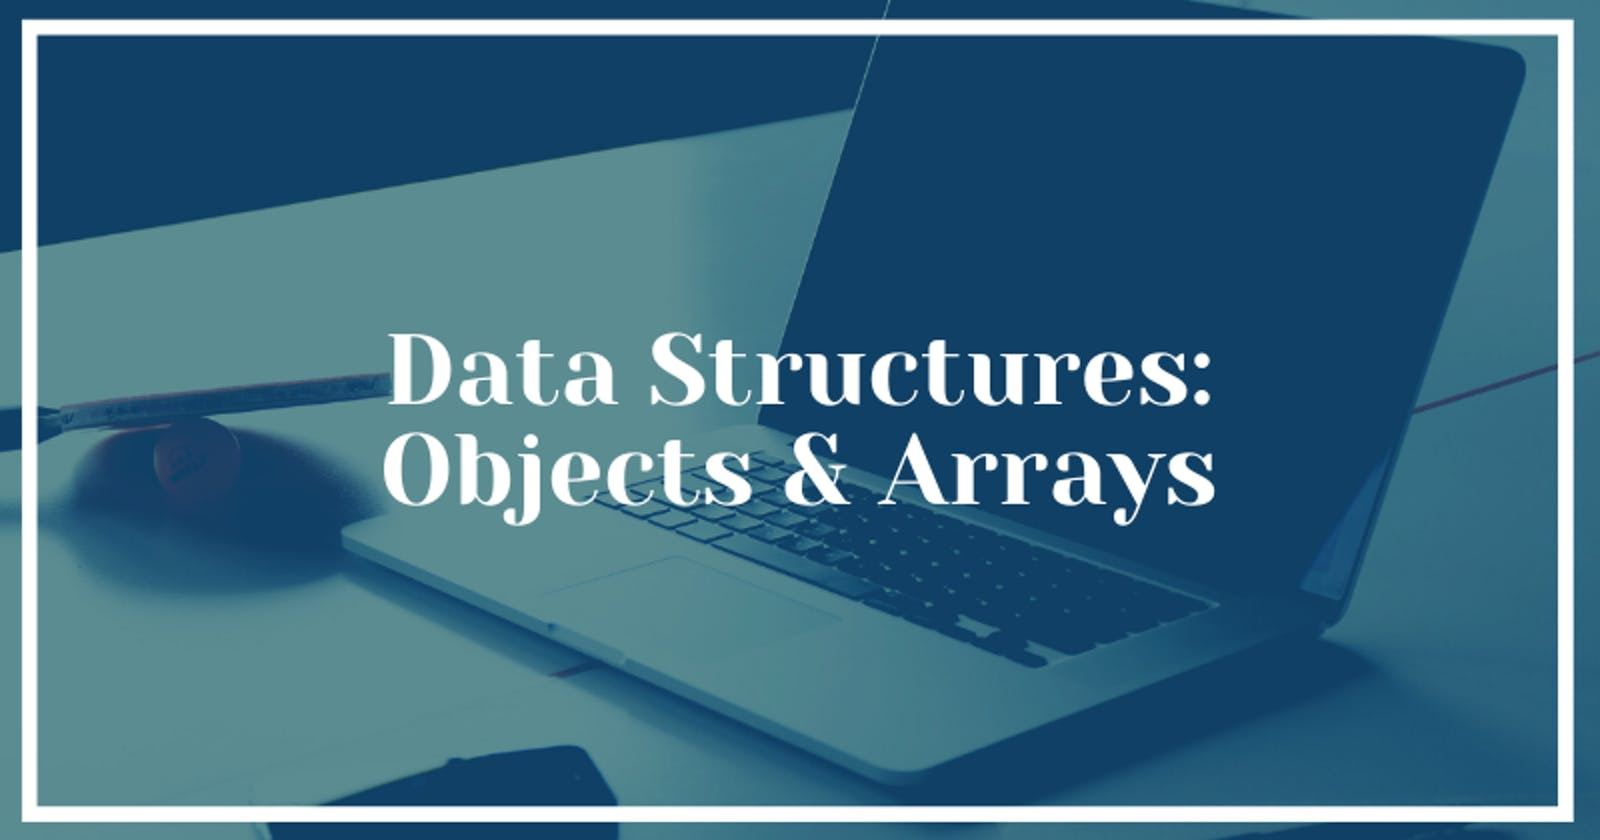 Objects and Arrays